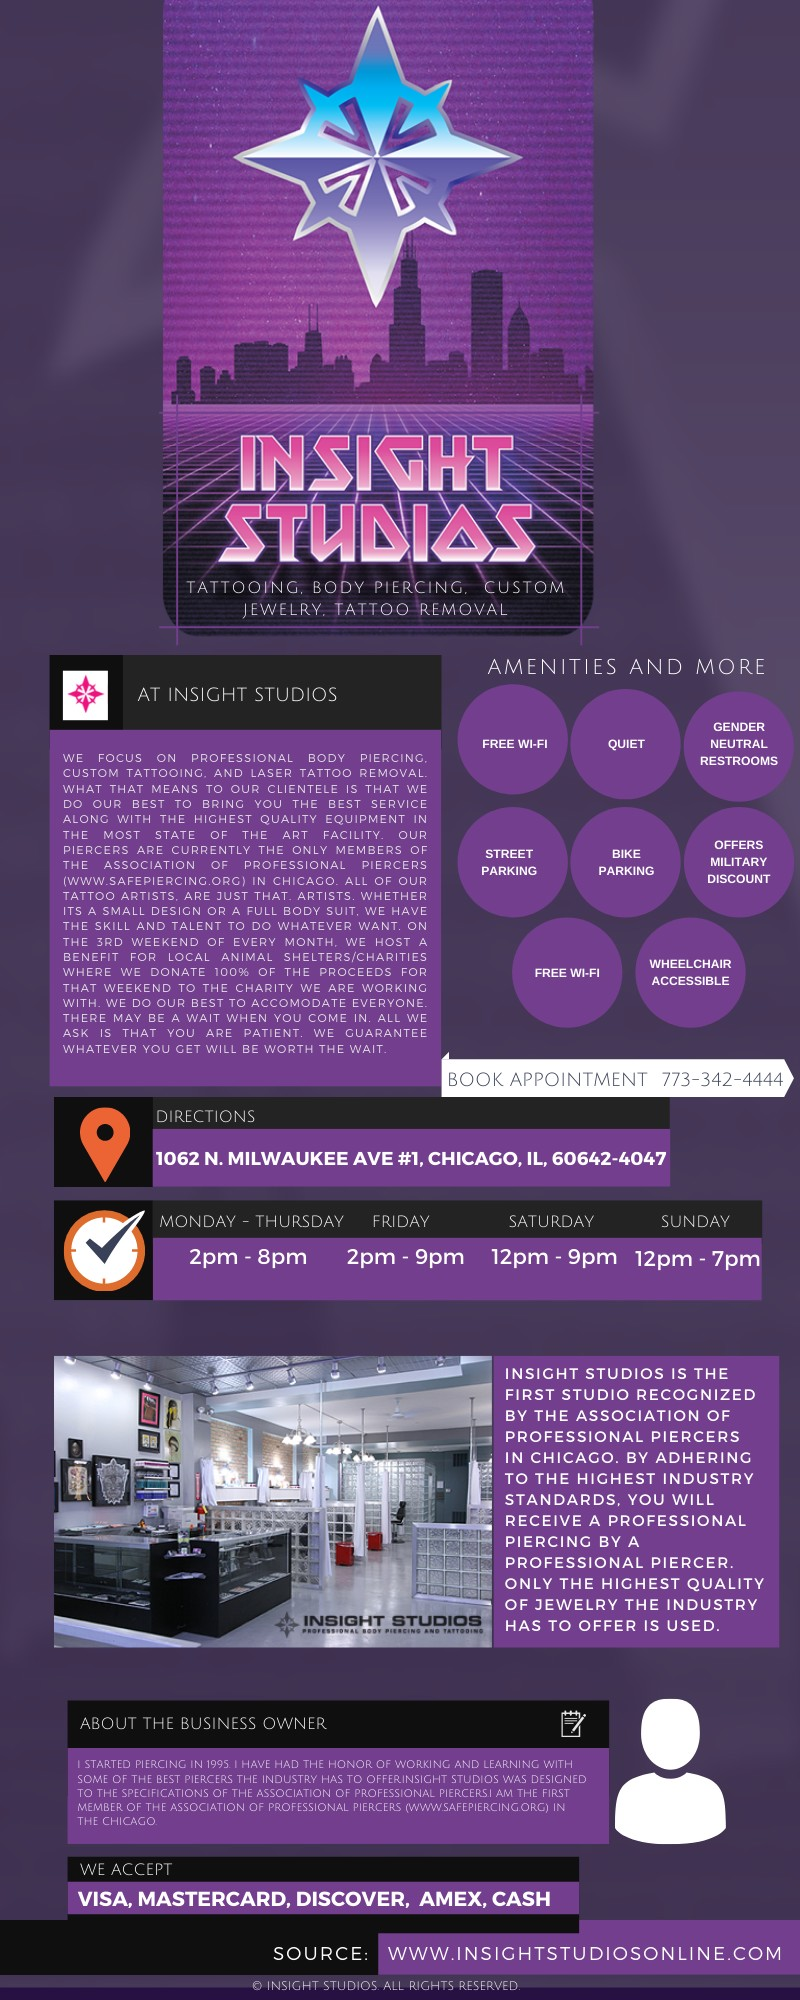 Insight Studios: The Company Overview